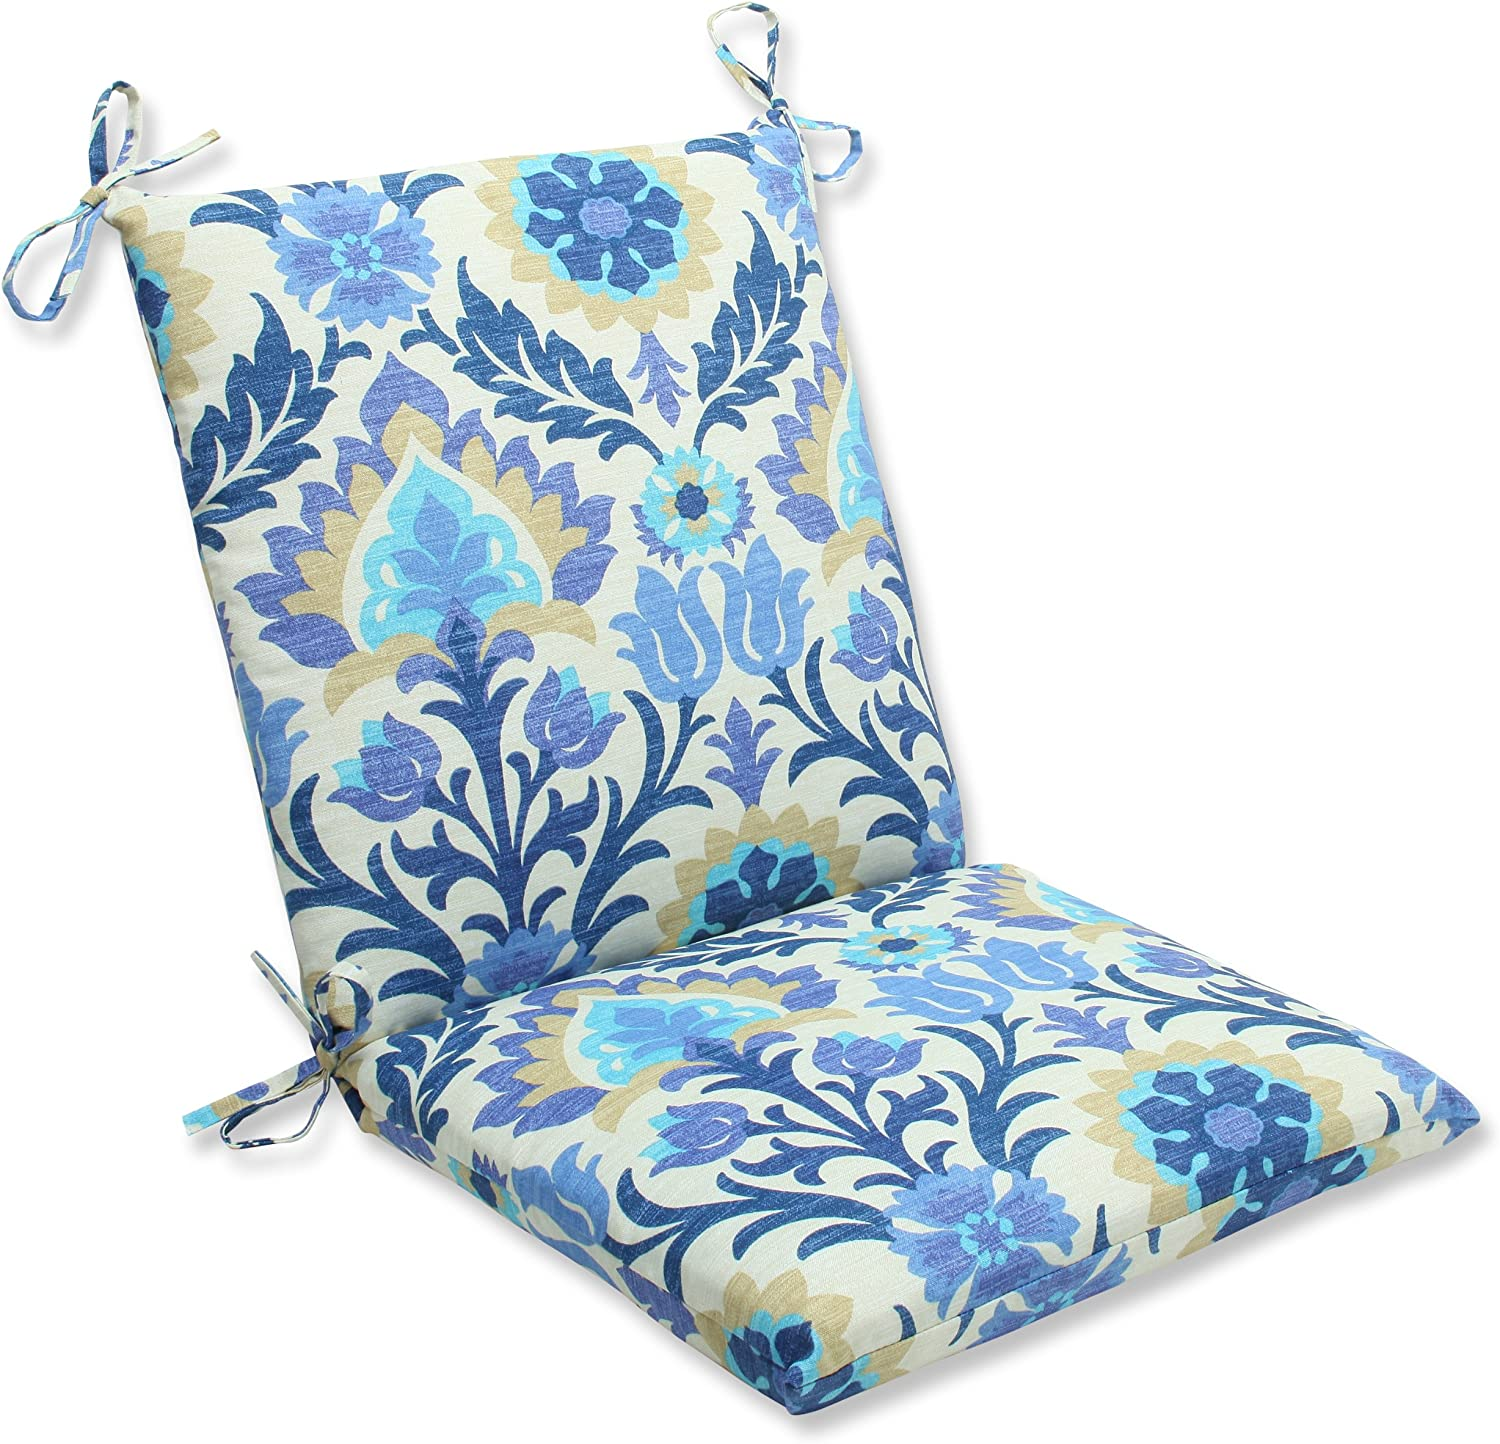 Pillow Perfect Outdoor Santa Maria Squared Corners Chair Cushion, Azure